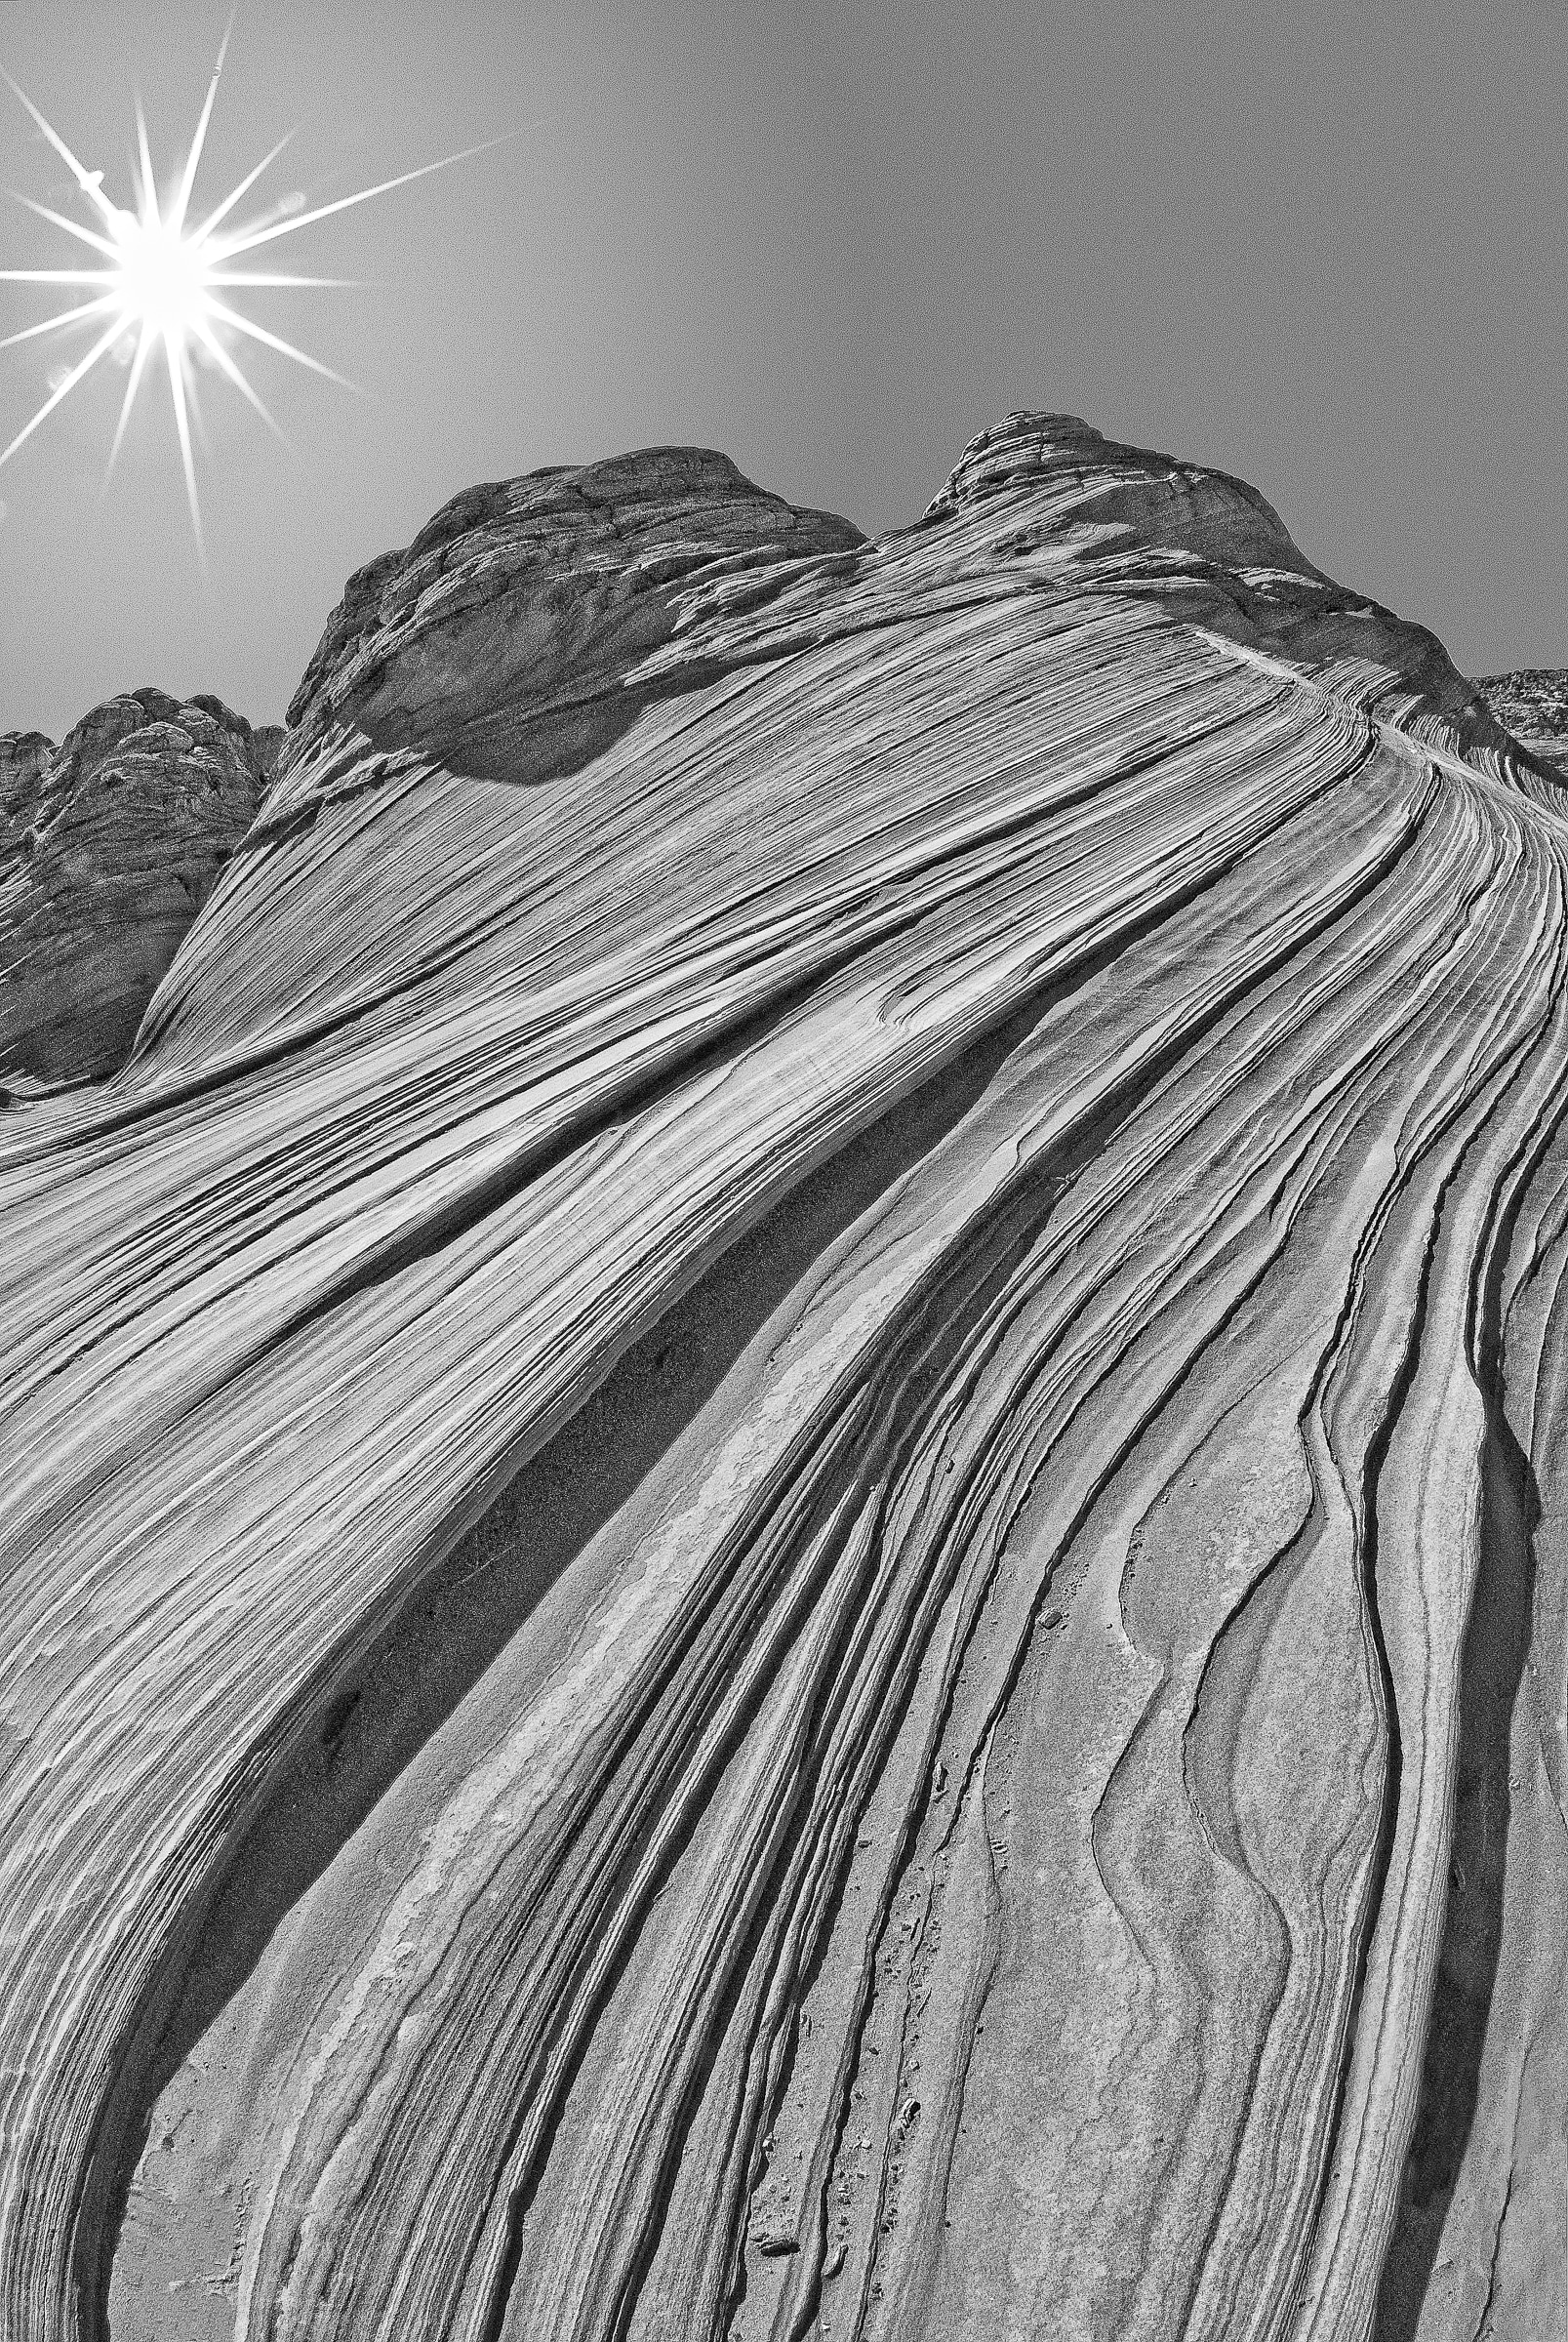 Sandstone strata running up the side of a small butte at The Wave in the North Coyote Buttes area of the Vermillion Cliffs National Monument.